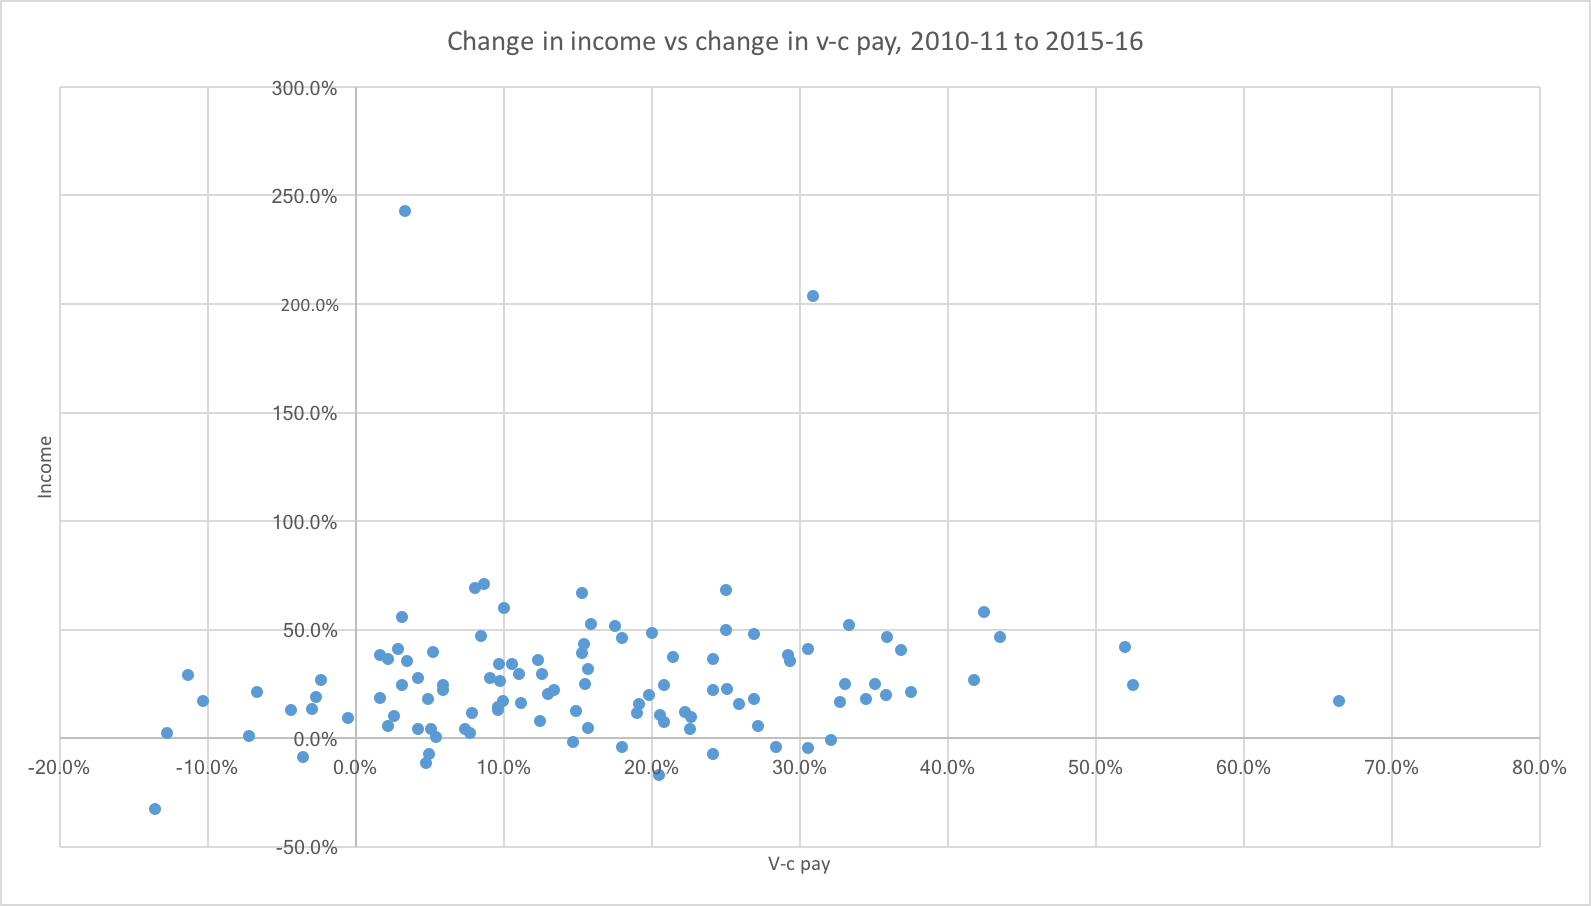 Change in income vs change in v-c pay, 2010-11 to 2015-16